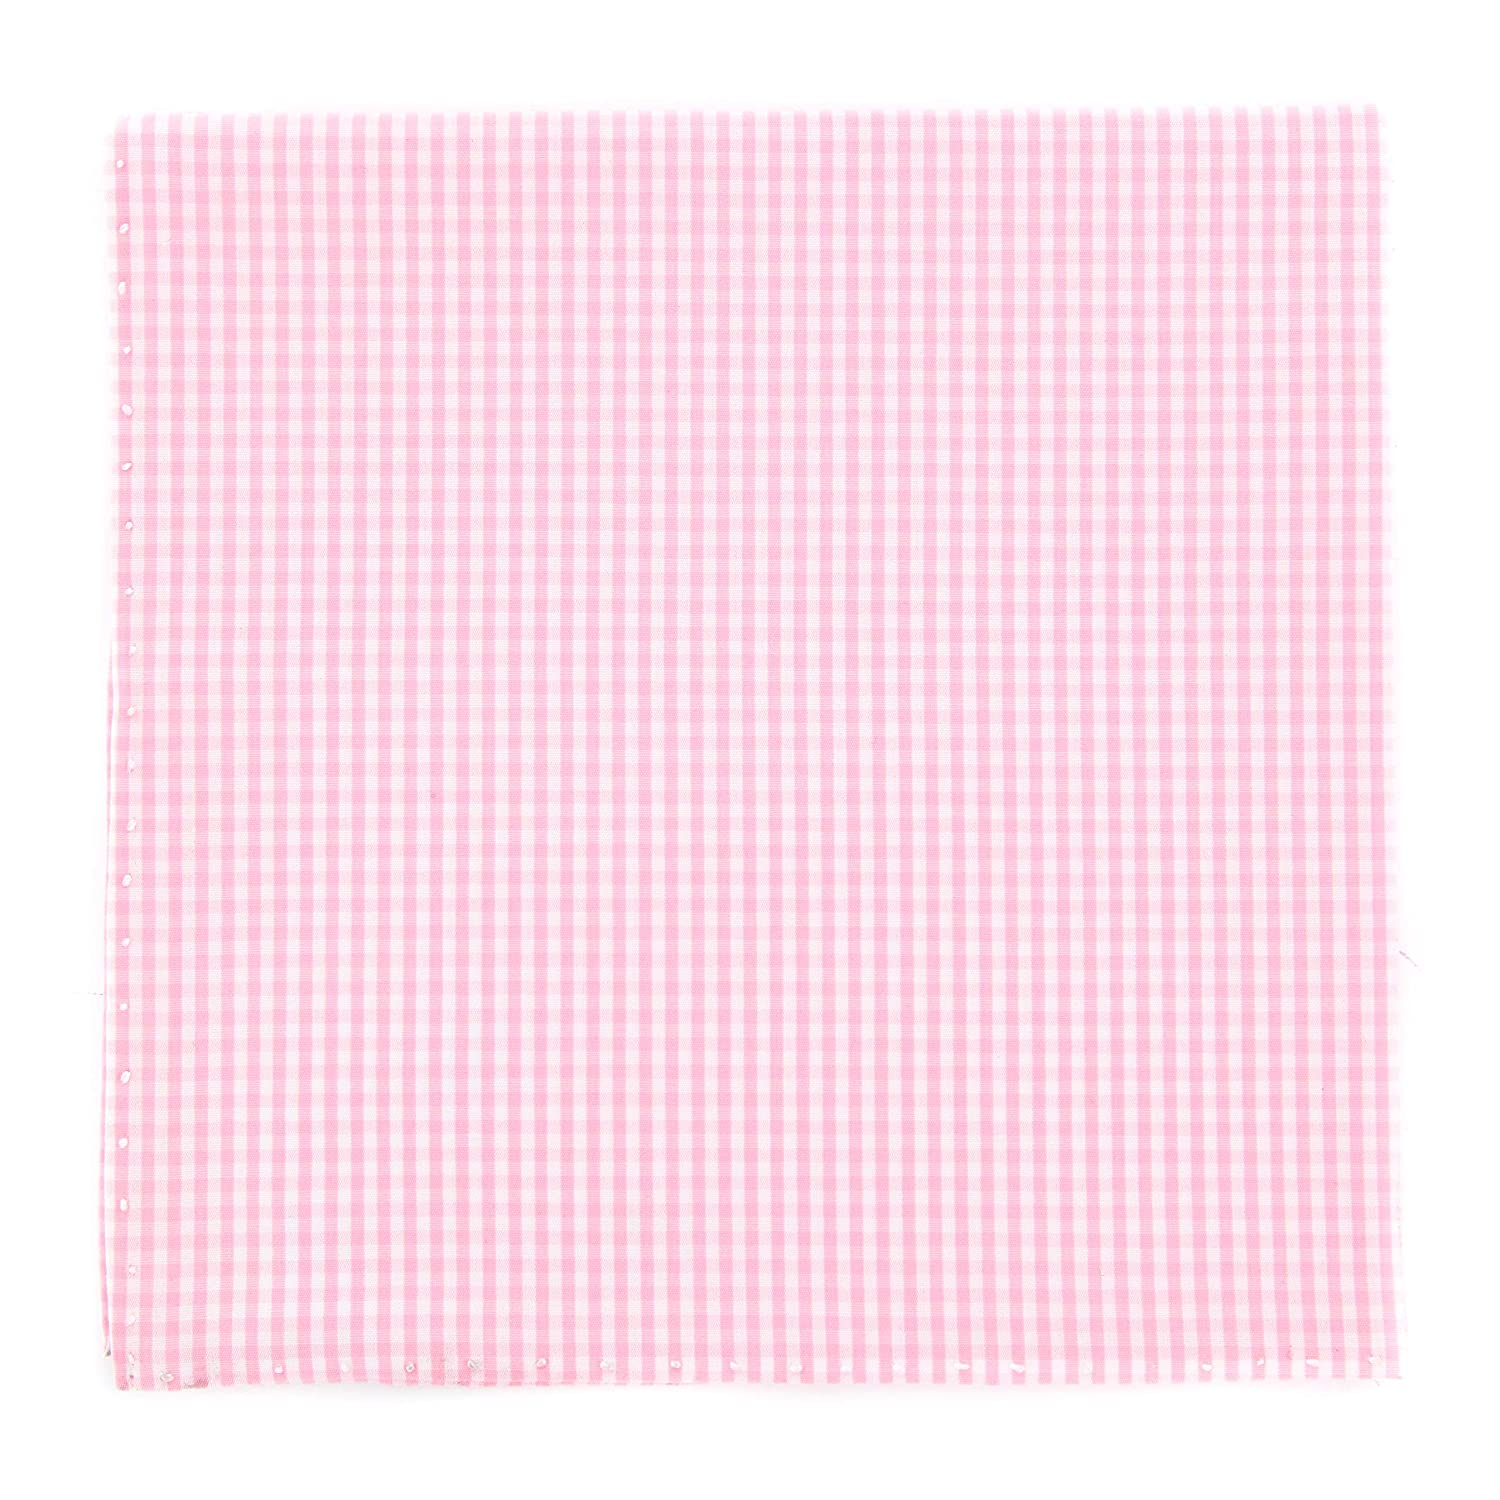 x 12.5 New Finamore Napoli Pink Micro-Check Pocket Square